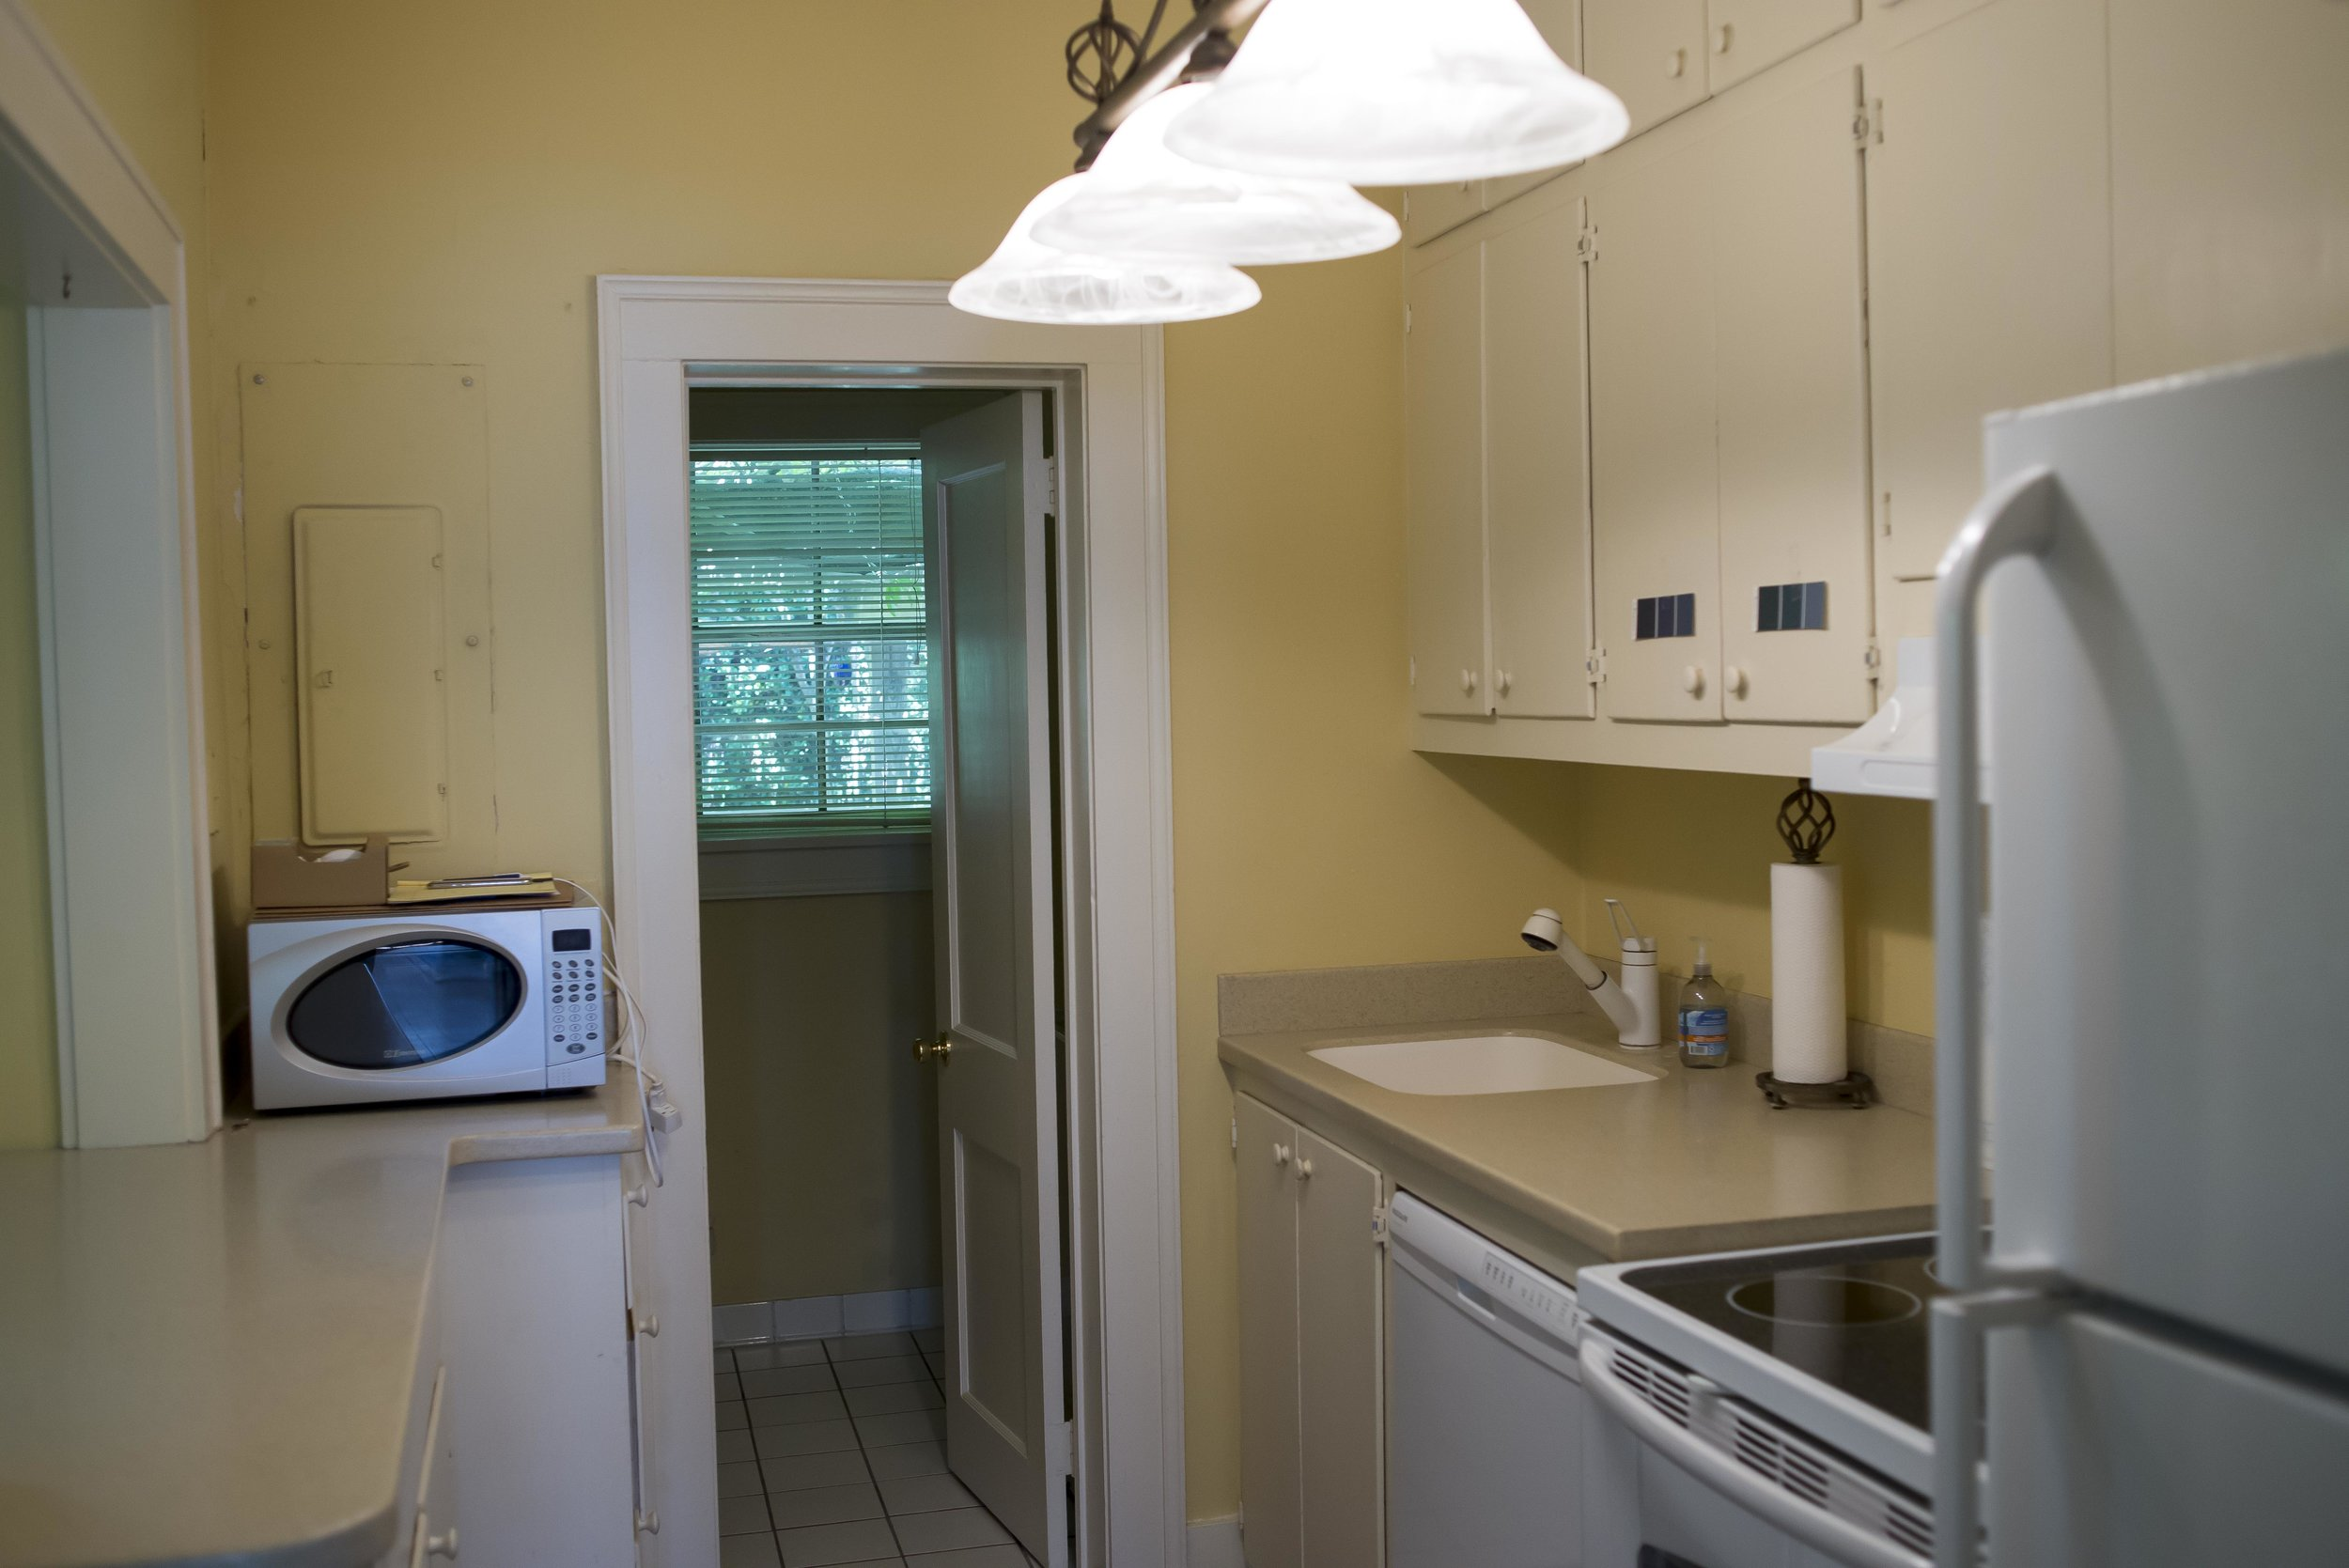 The kitchen, with adjacent powder room . . . if you tried really hard you could stick your toe out and touch the kitchen sink cabinet while sitting on the toilet. Super classy.